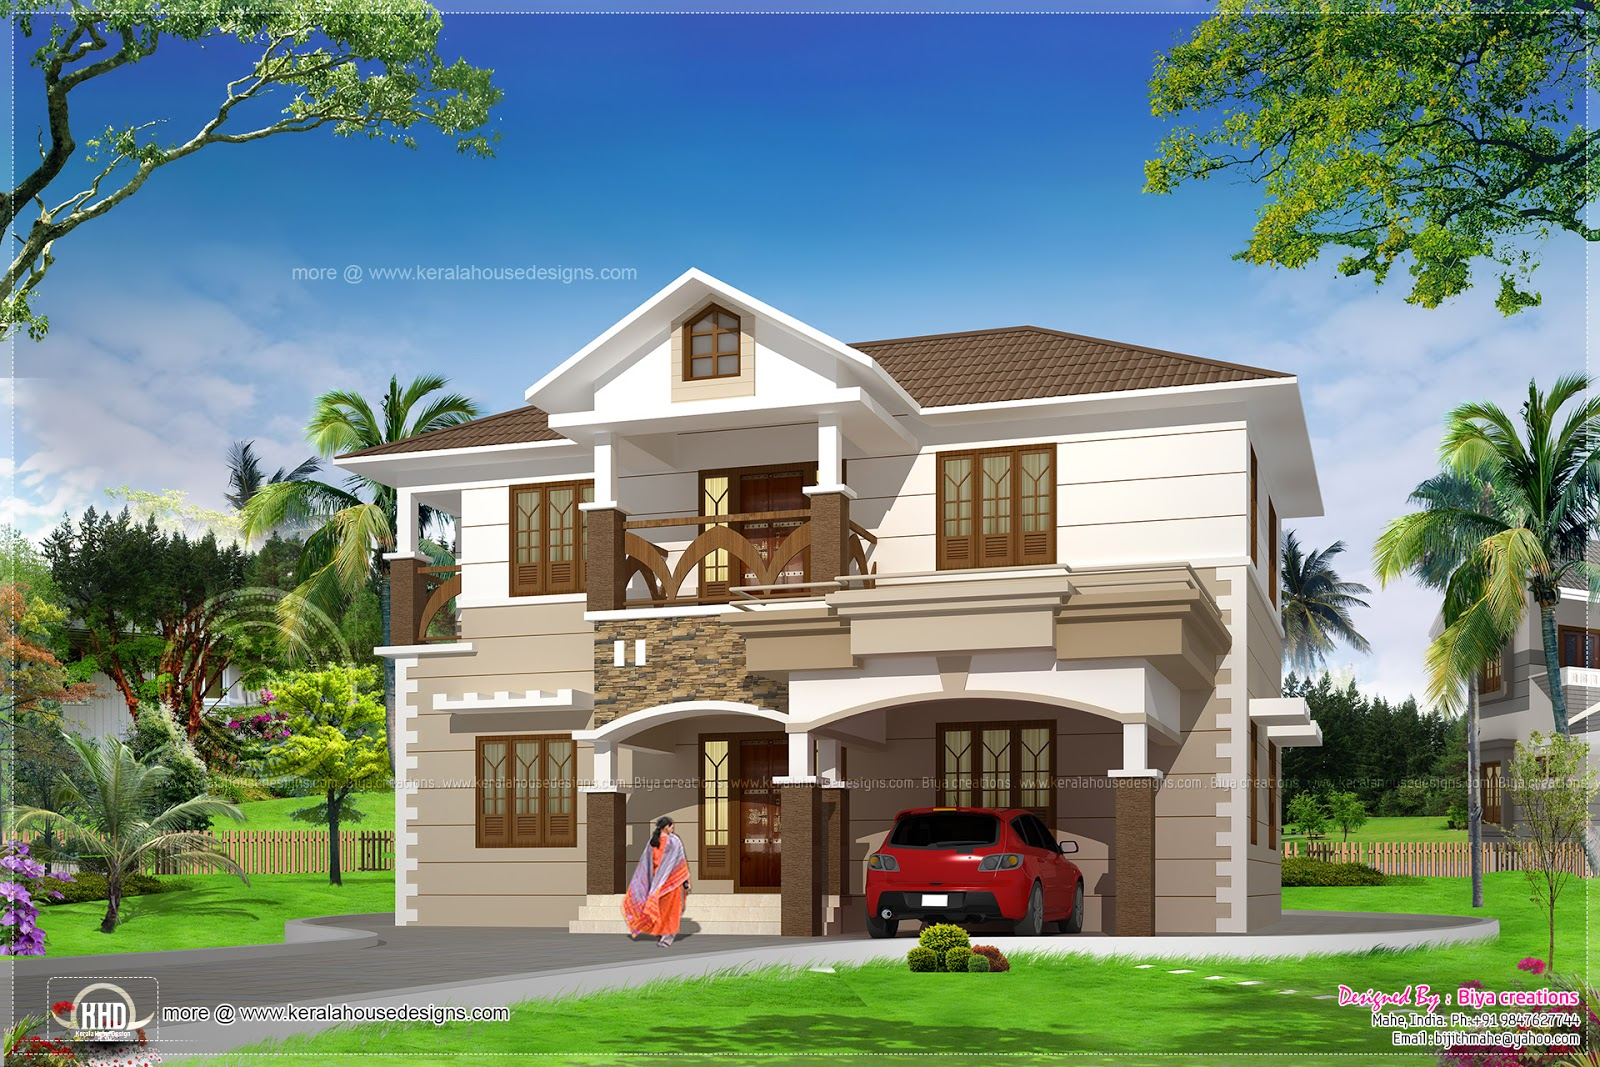 4 Bedroom Villa In 2250 Square Feet Kerala Home Design